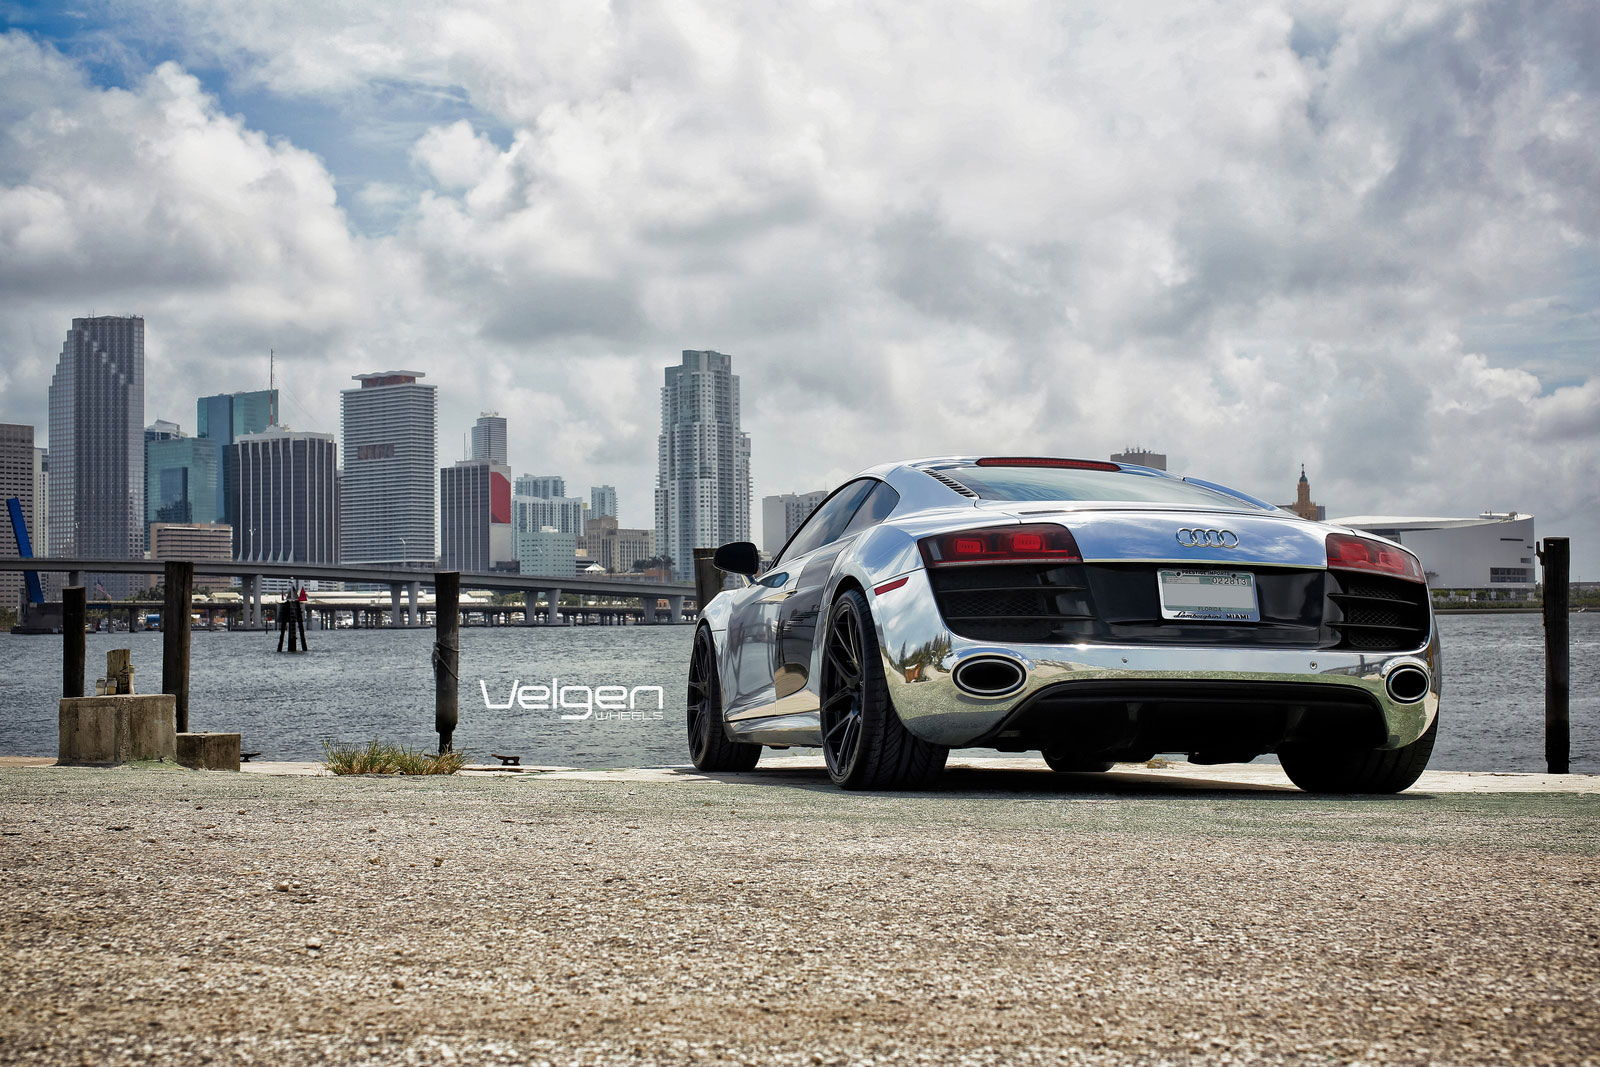 Used 2014 Audi RS 7 For Sale in Miami FL  CarGurus